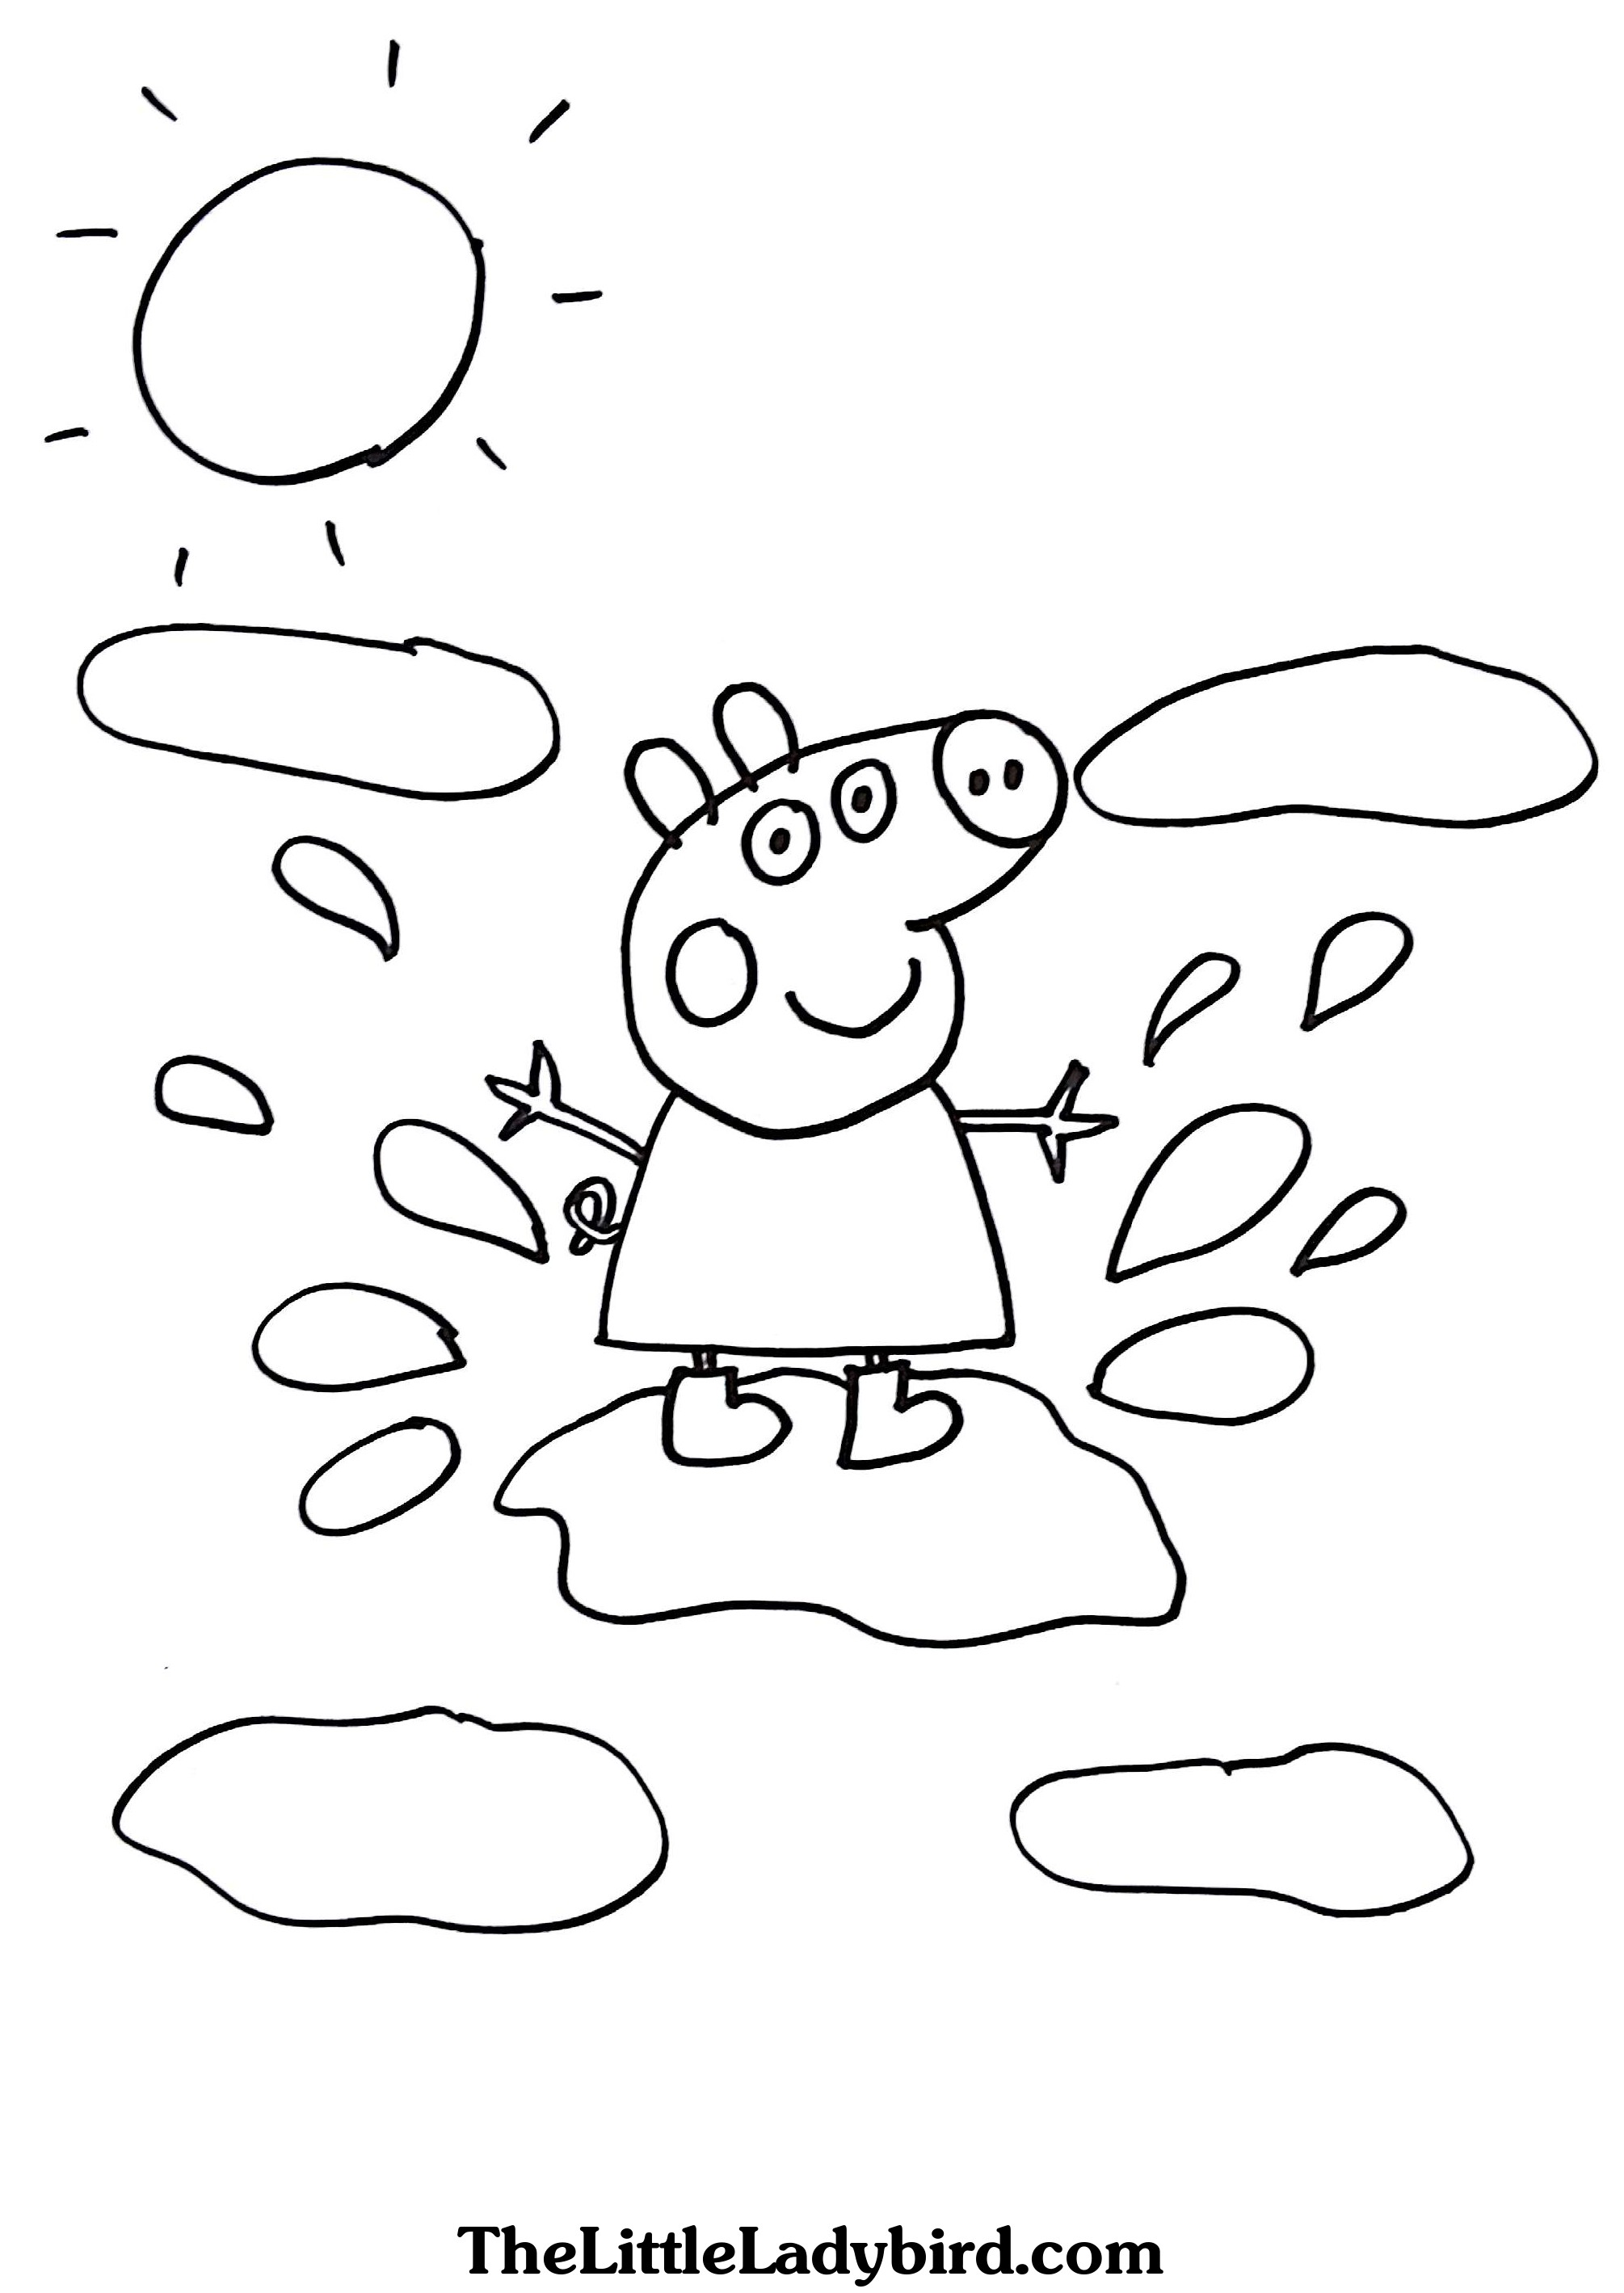 Pig Coloring Pages For Toddlers at GetDrawings.com | Free for ...